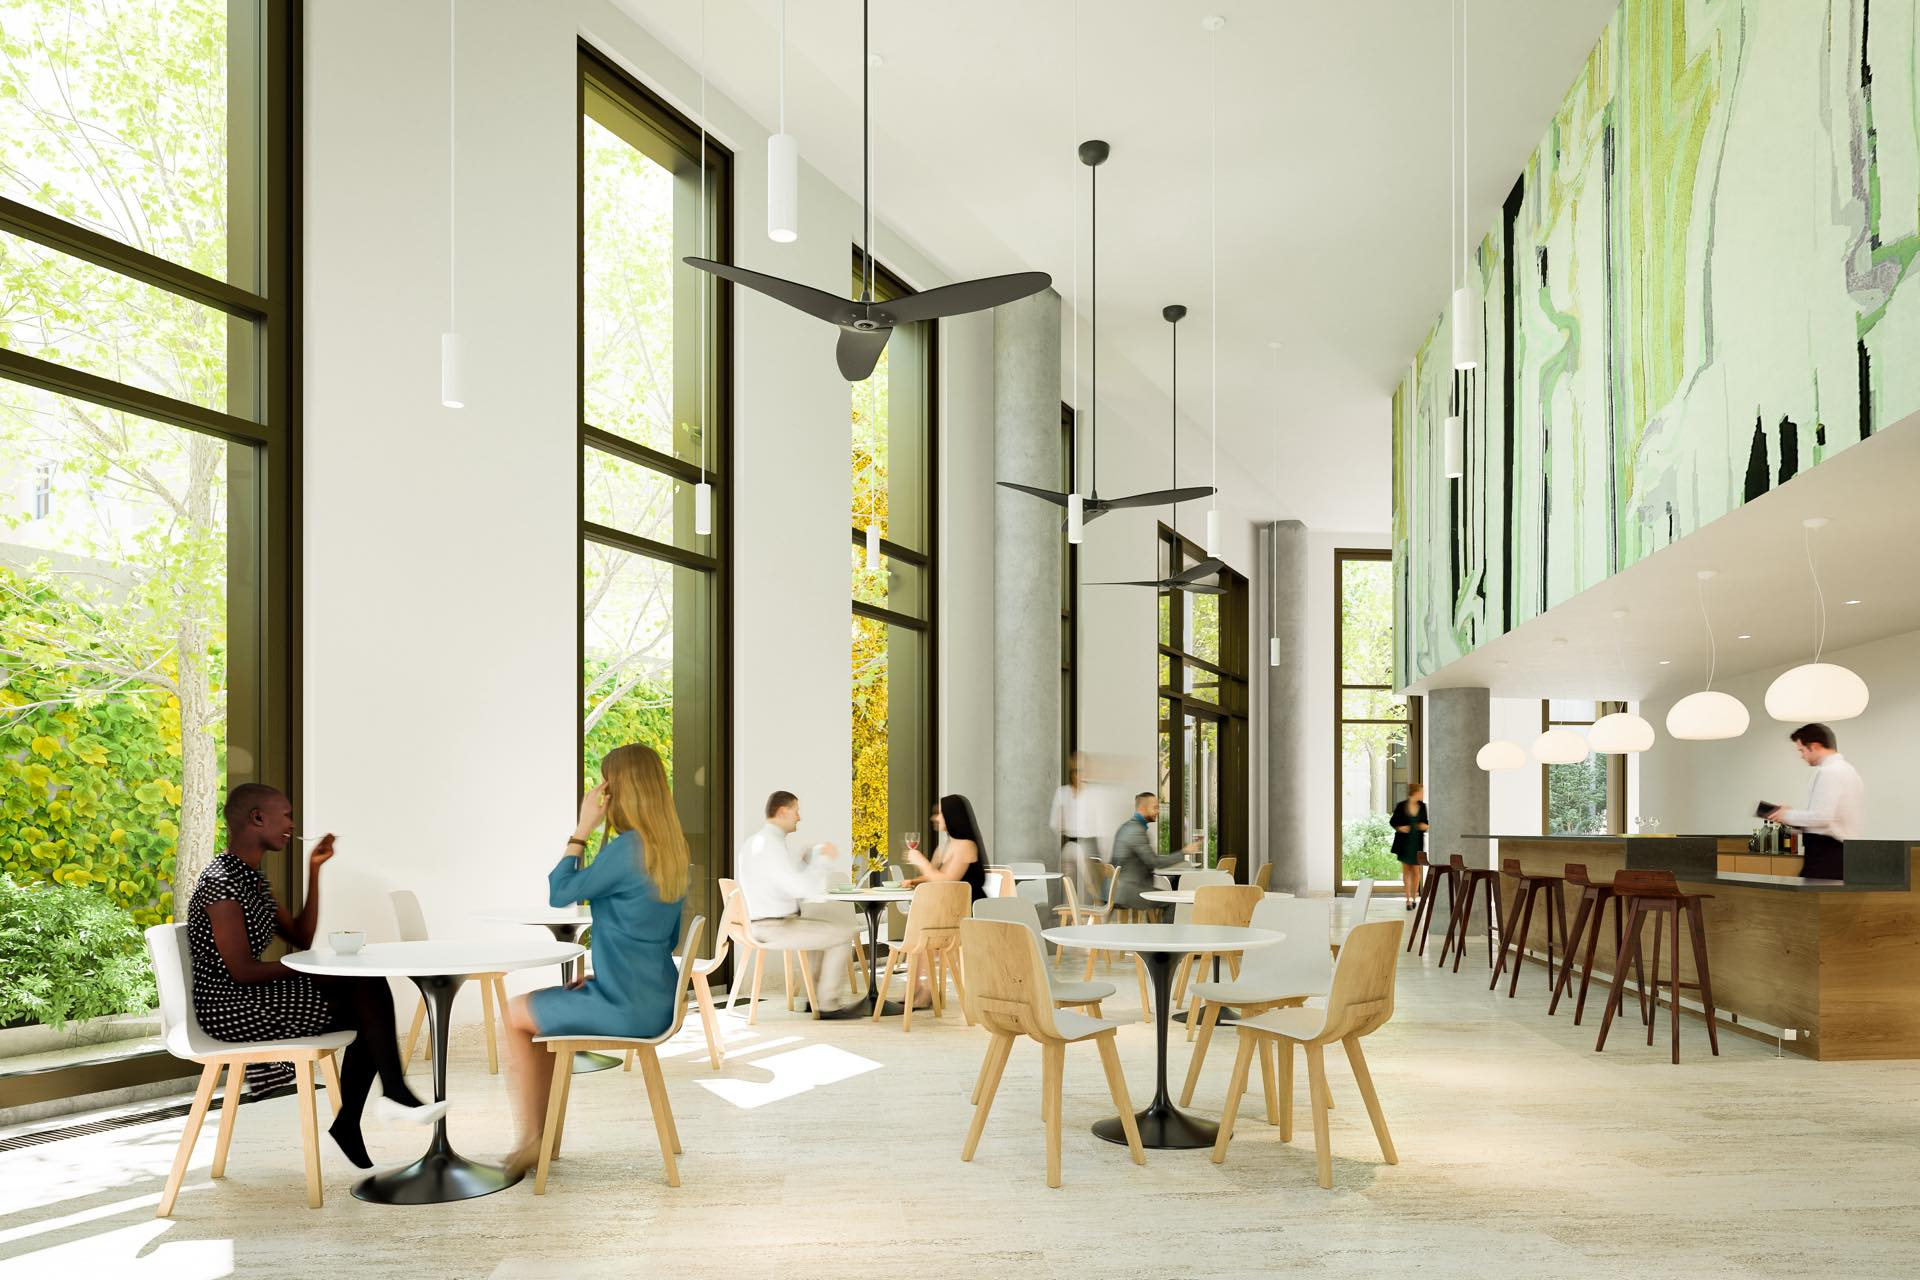 Enjoy connections with friends and neighbors in our airy cafe